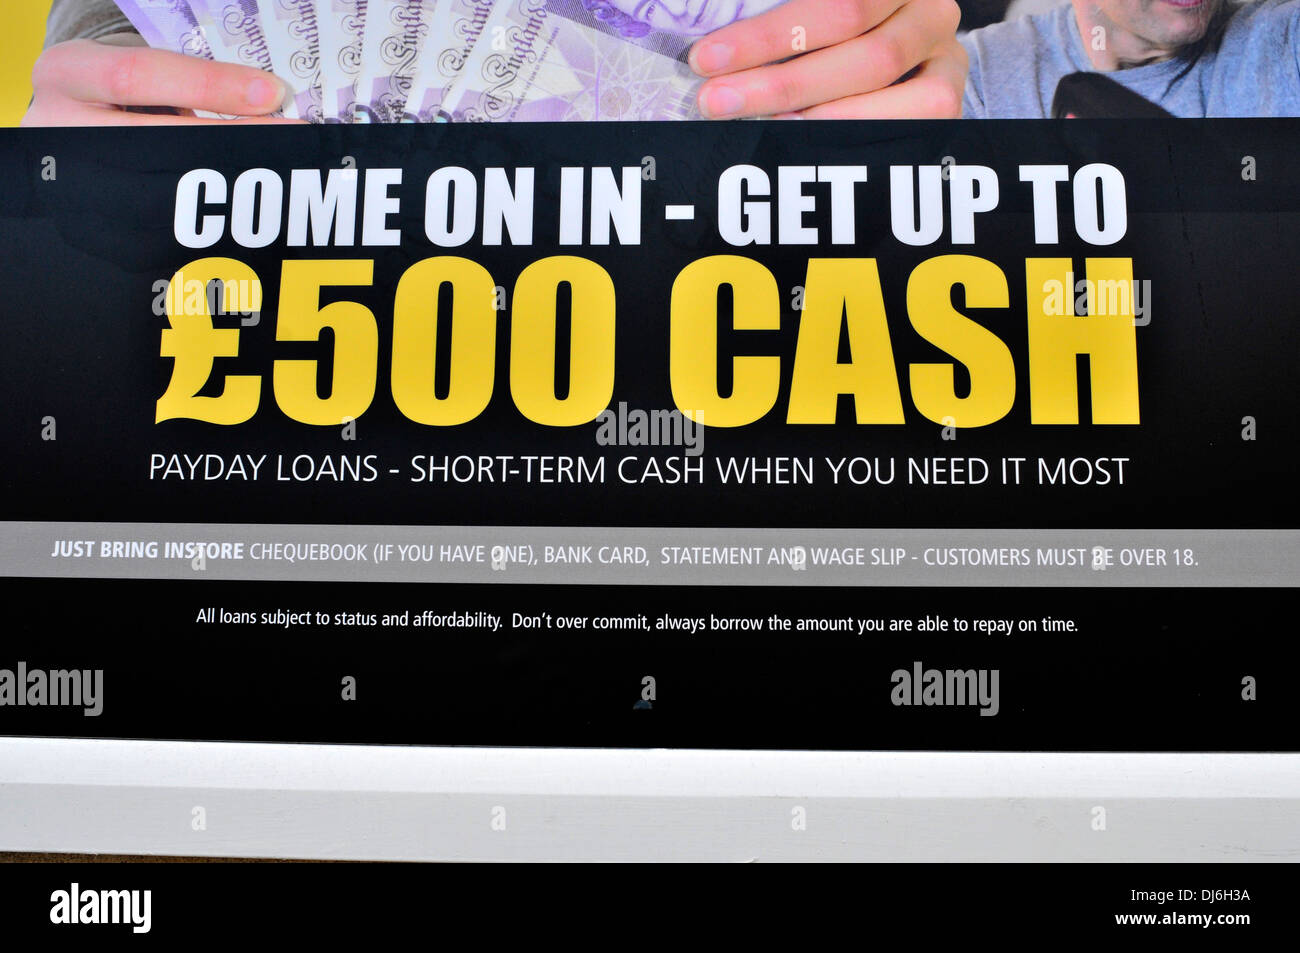 For payday loans picture 9